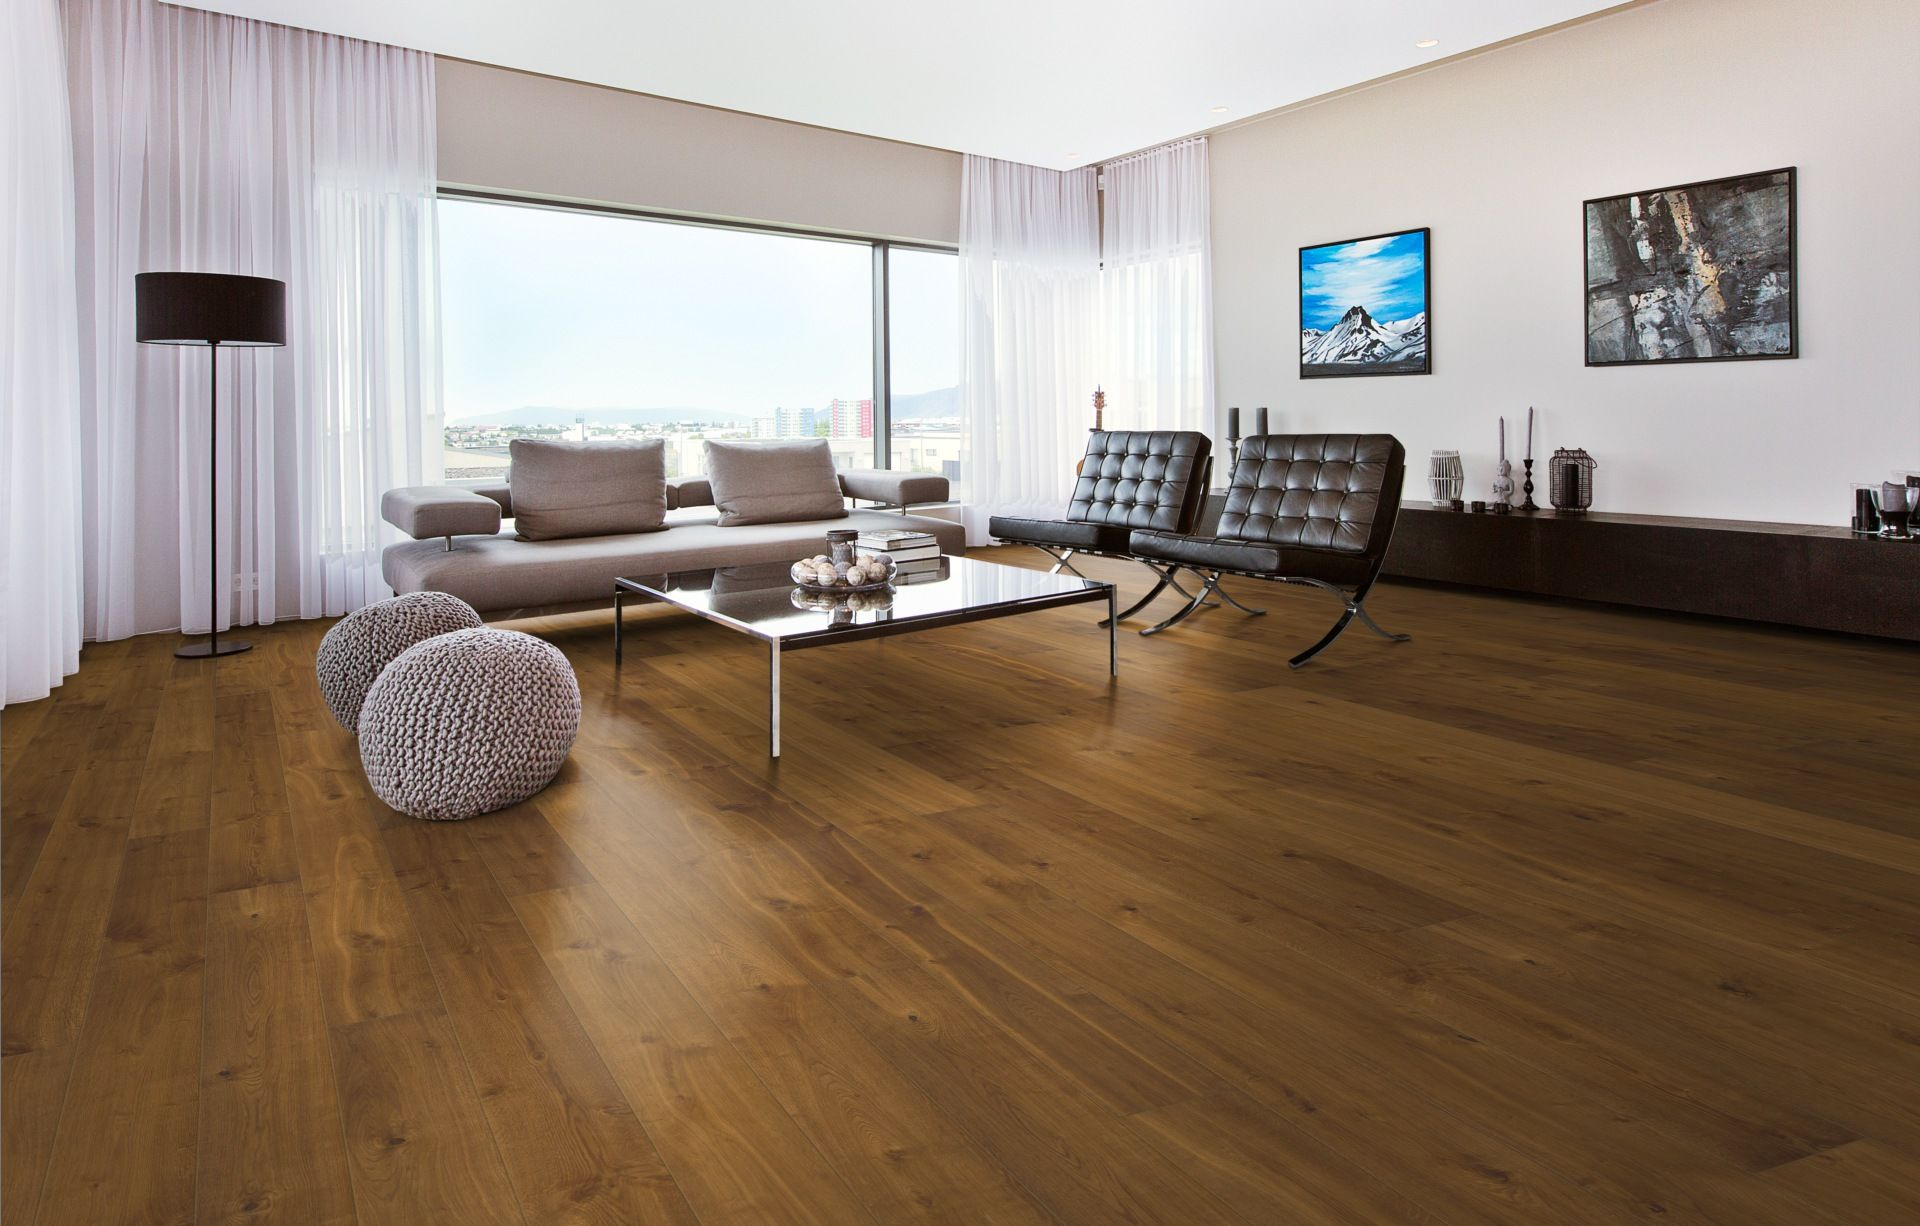 Kohler Parkett Sevede Fußboden Engineered Wood Floors Kahrs Flooring Und